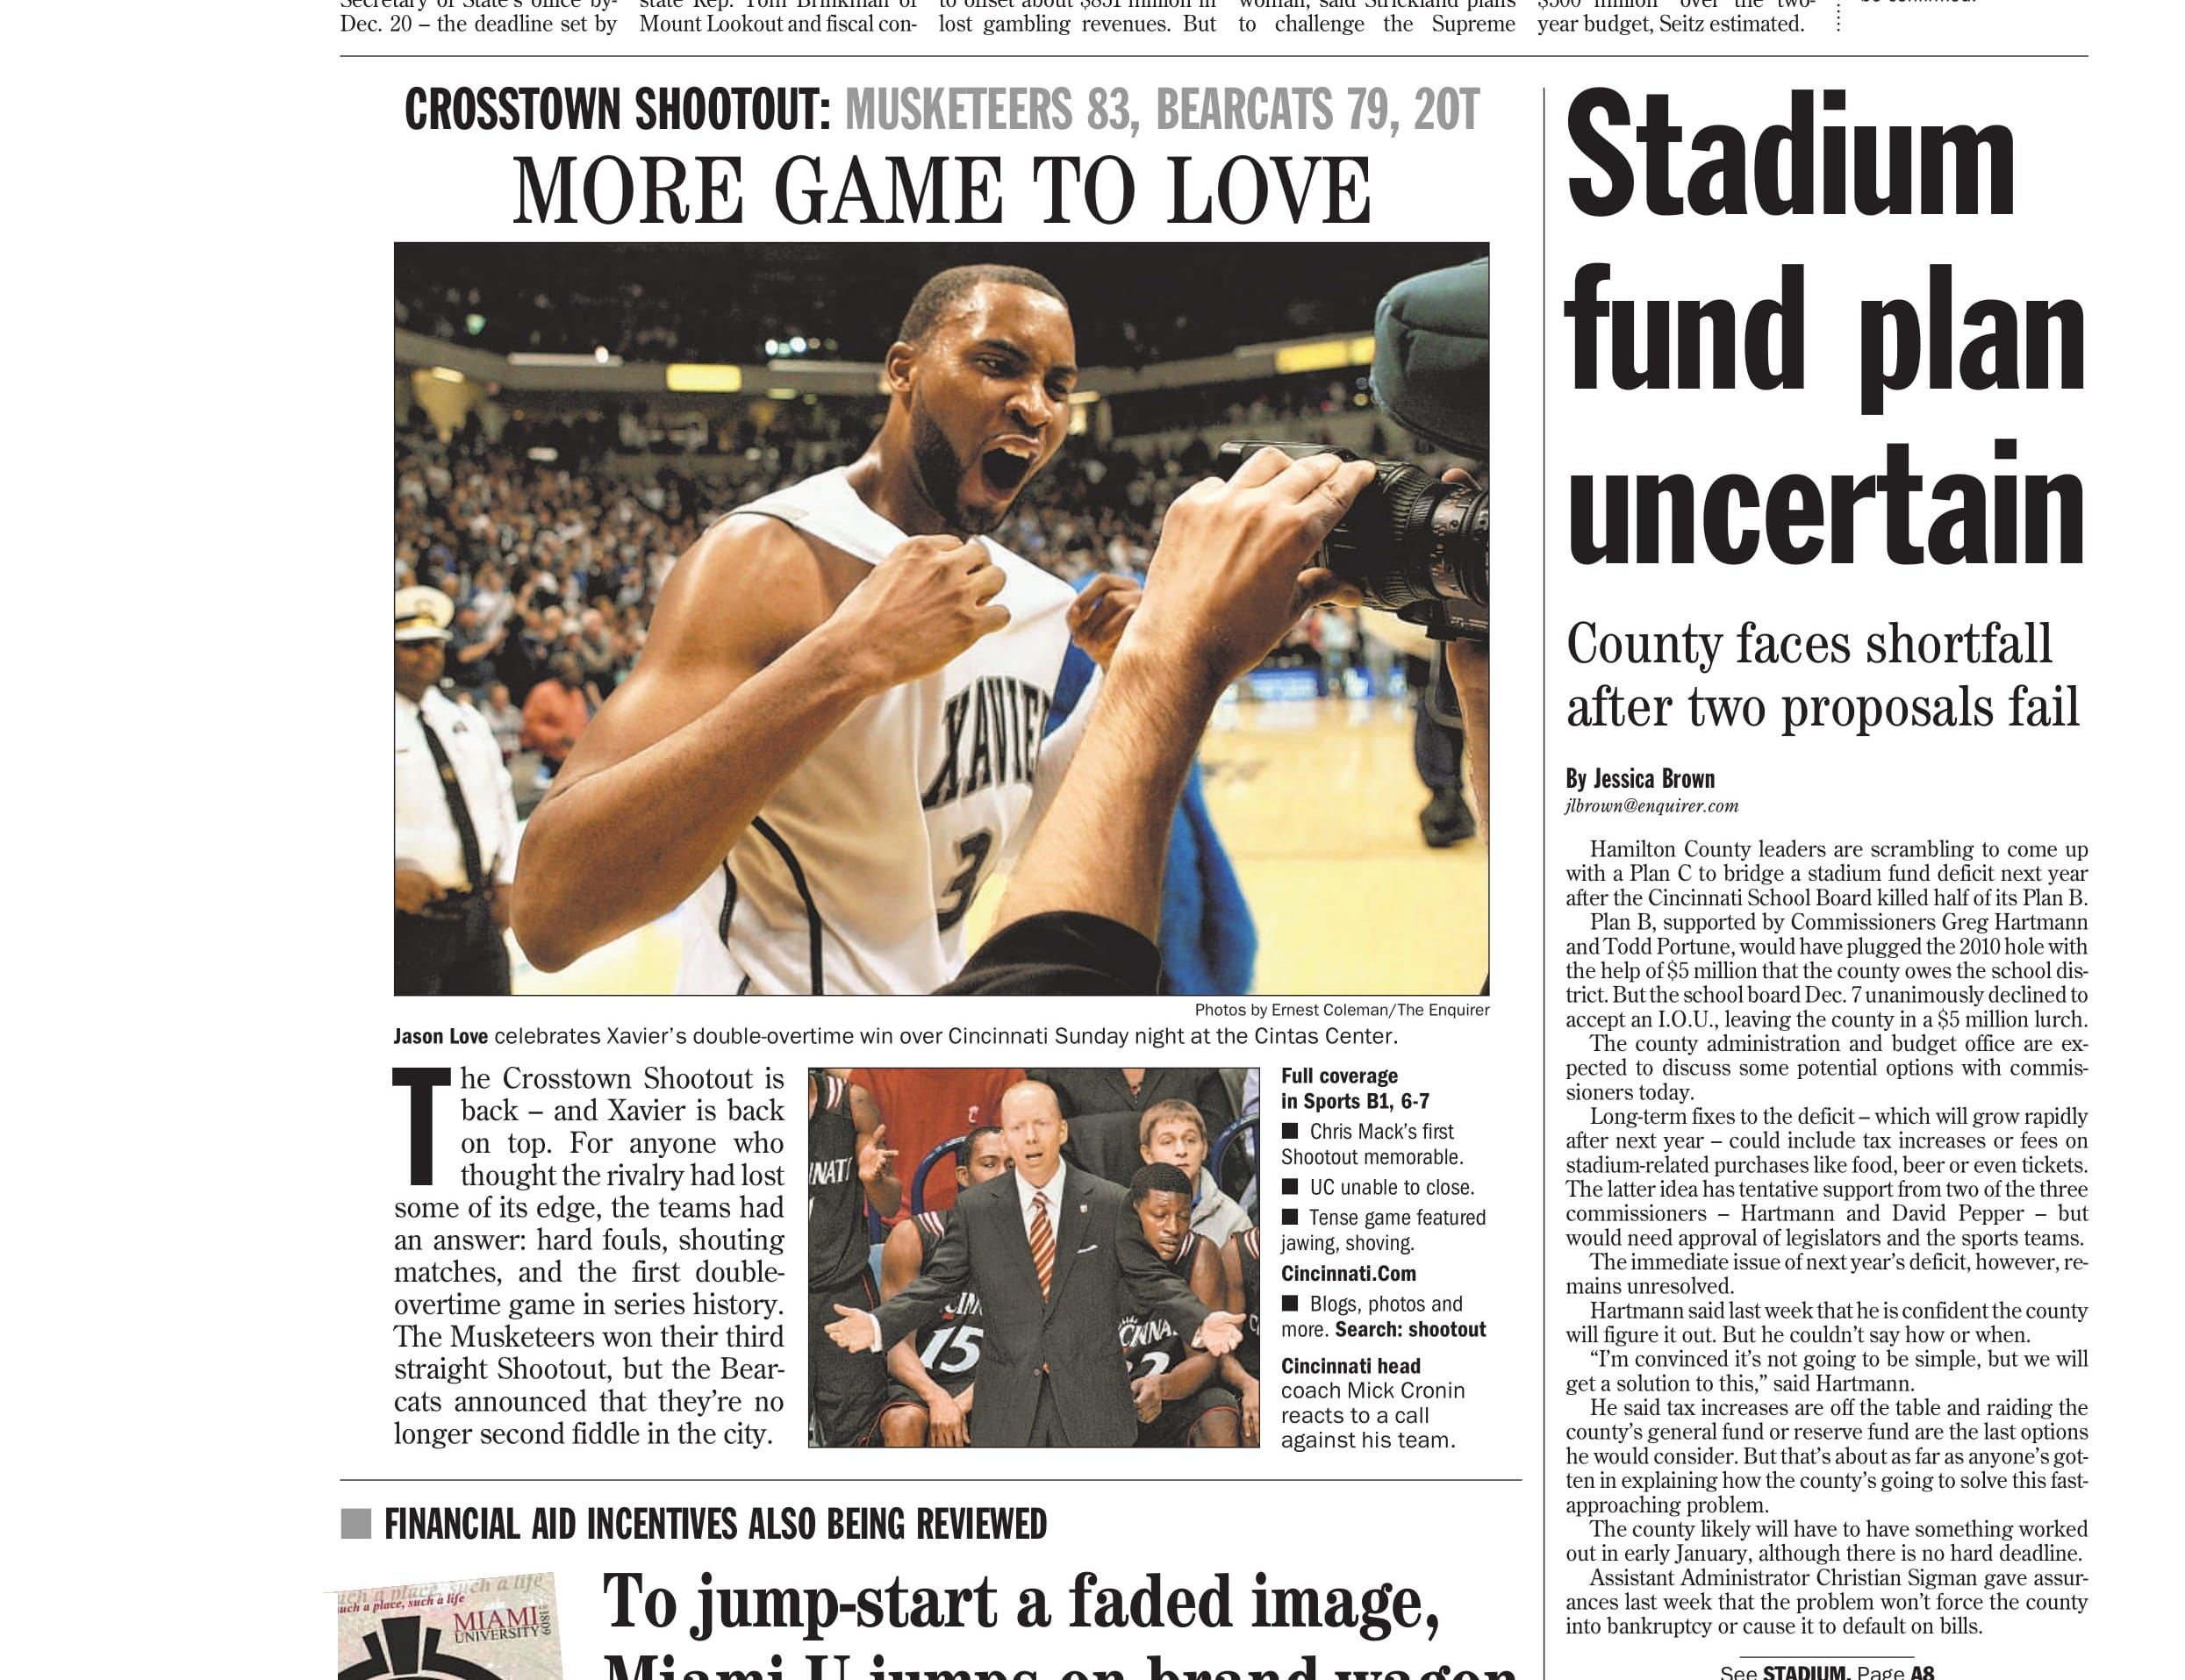 Chris Mack's first Crosstown Shootout as a head coach ended in a memorable double overtime win for the Musketeers in the 2009-10 season.